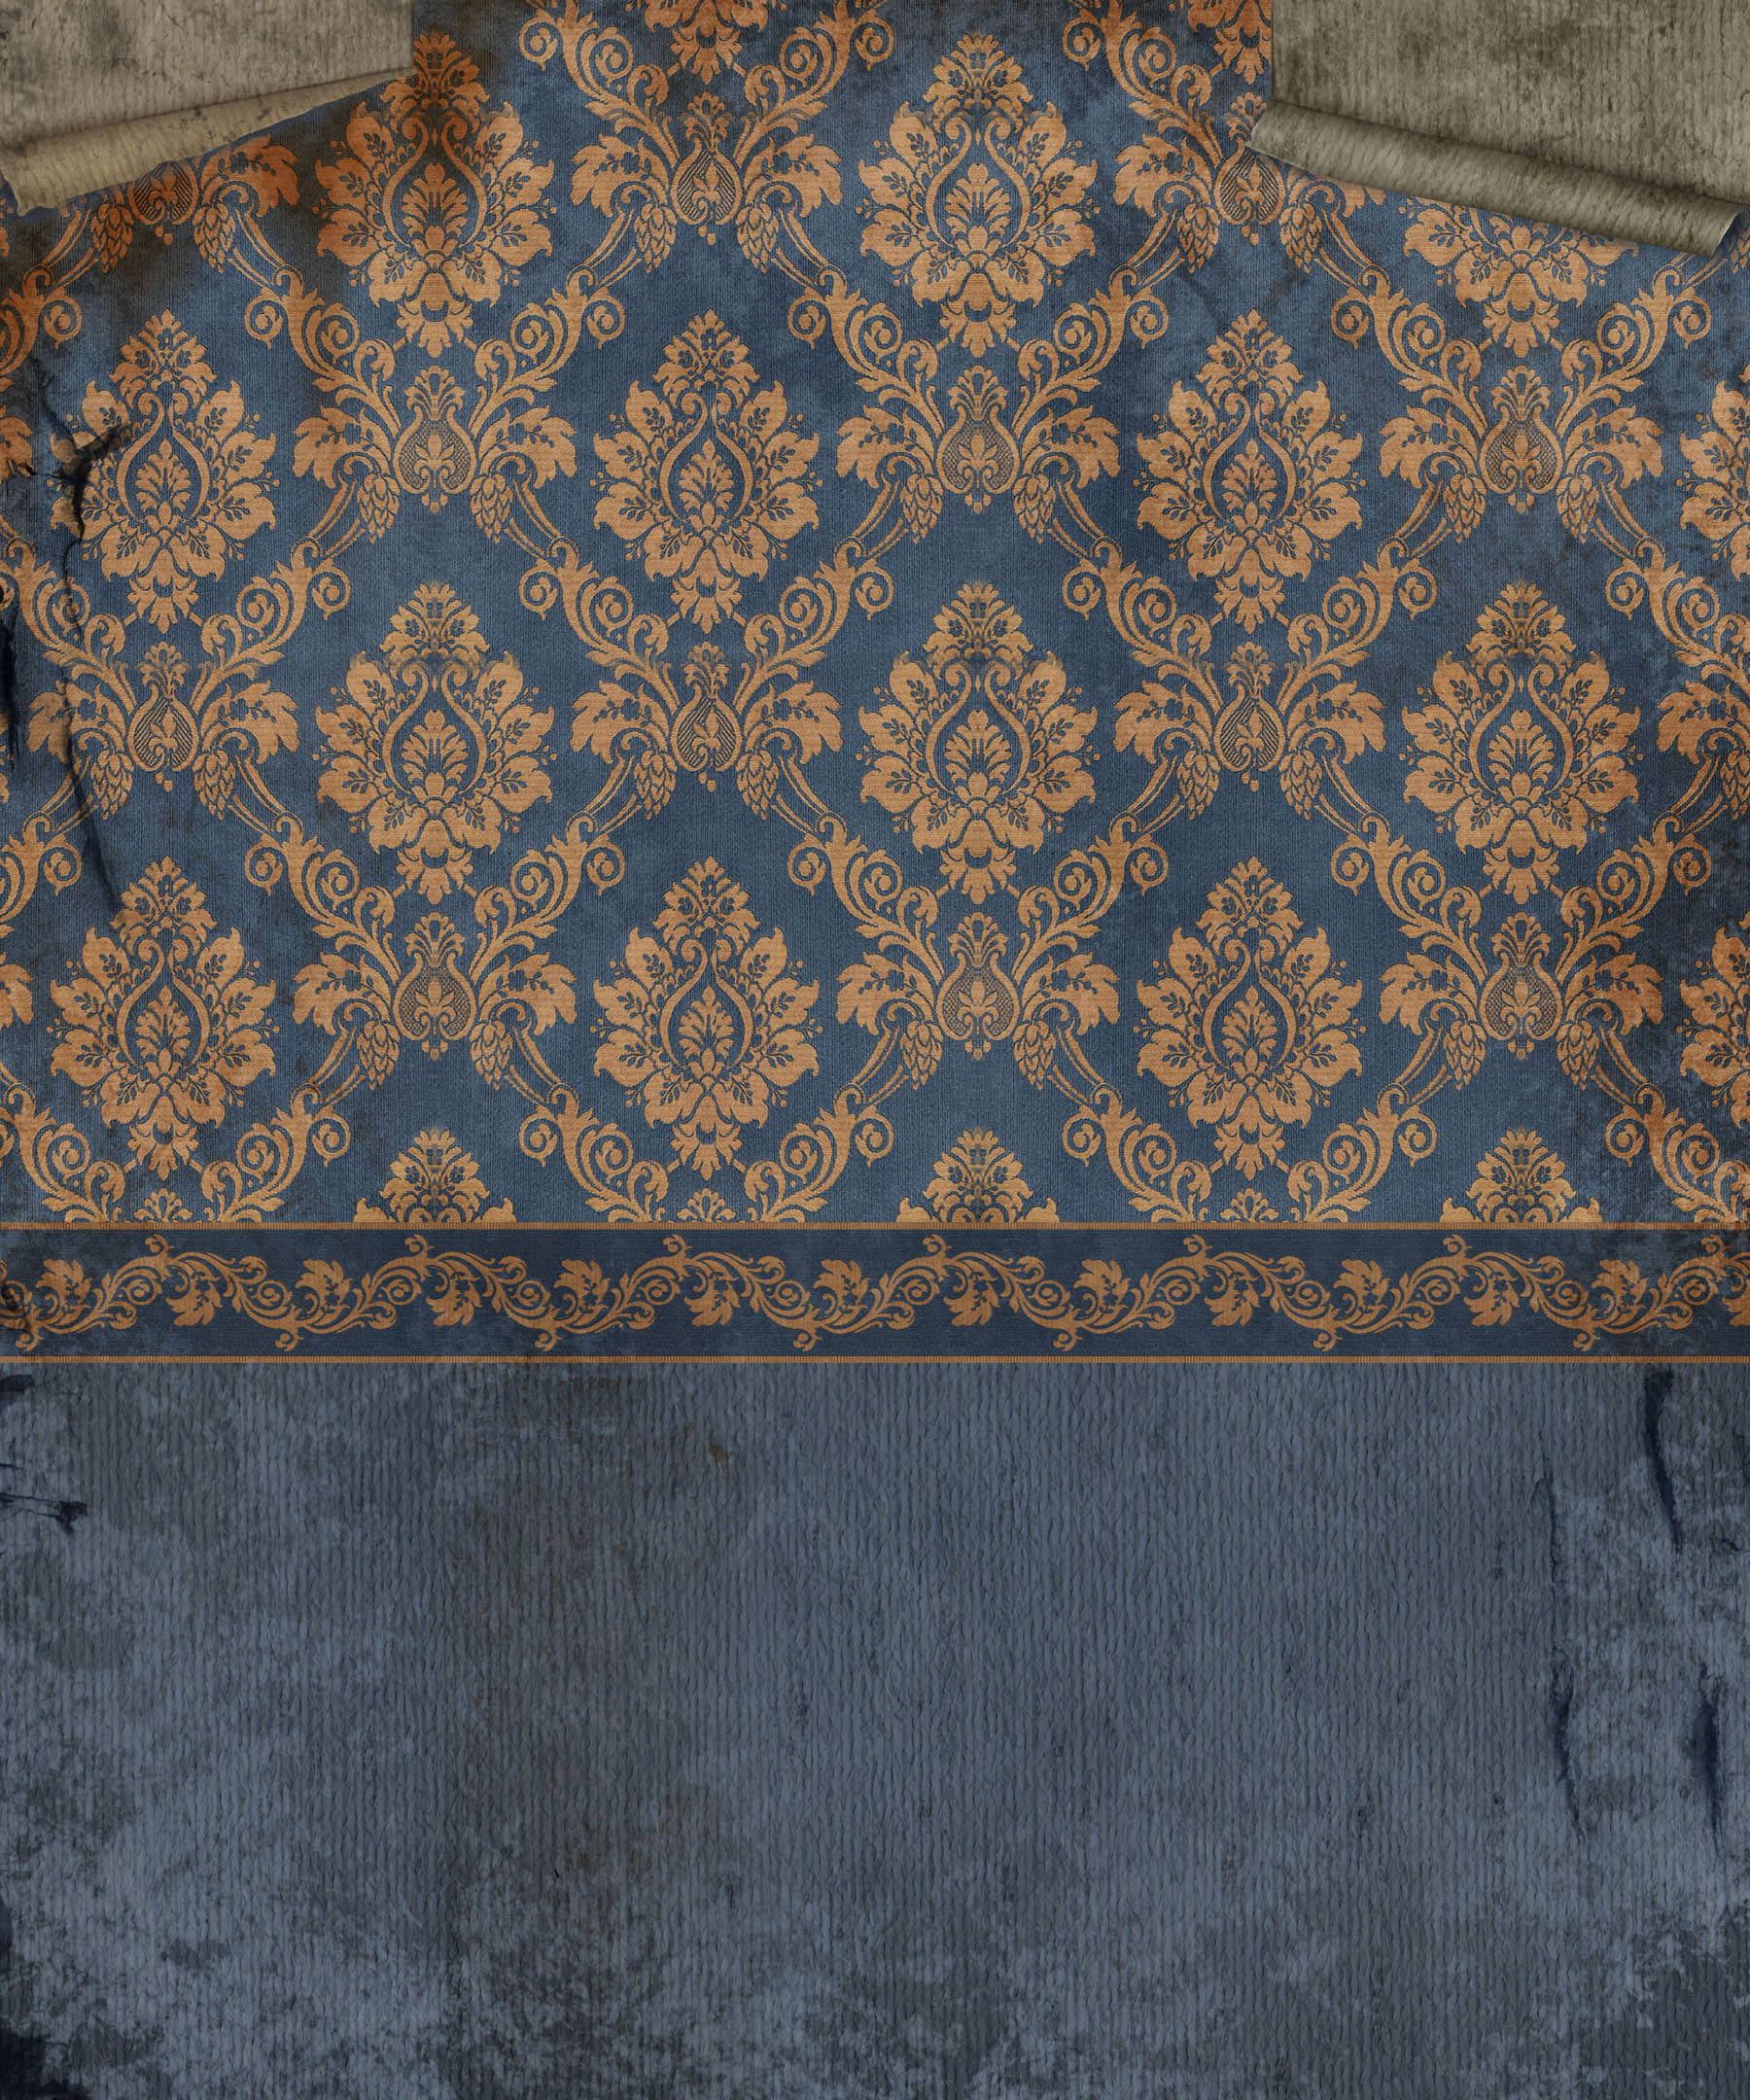 Old European style wall wallpaper